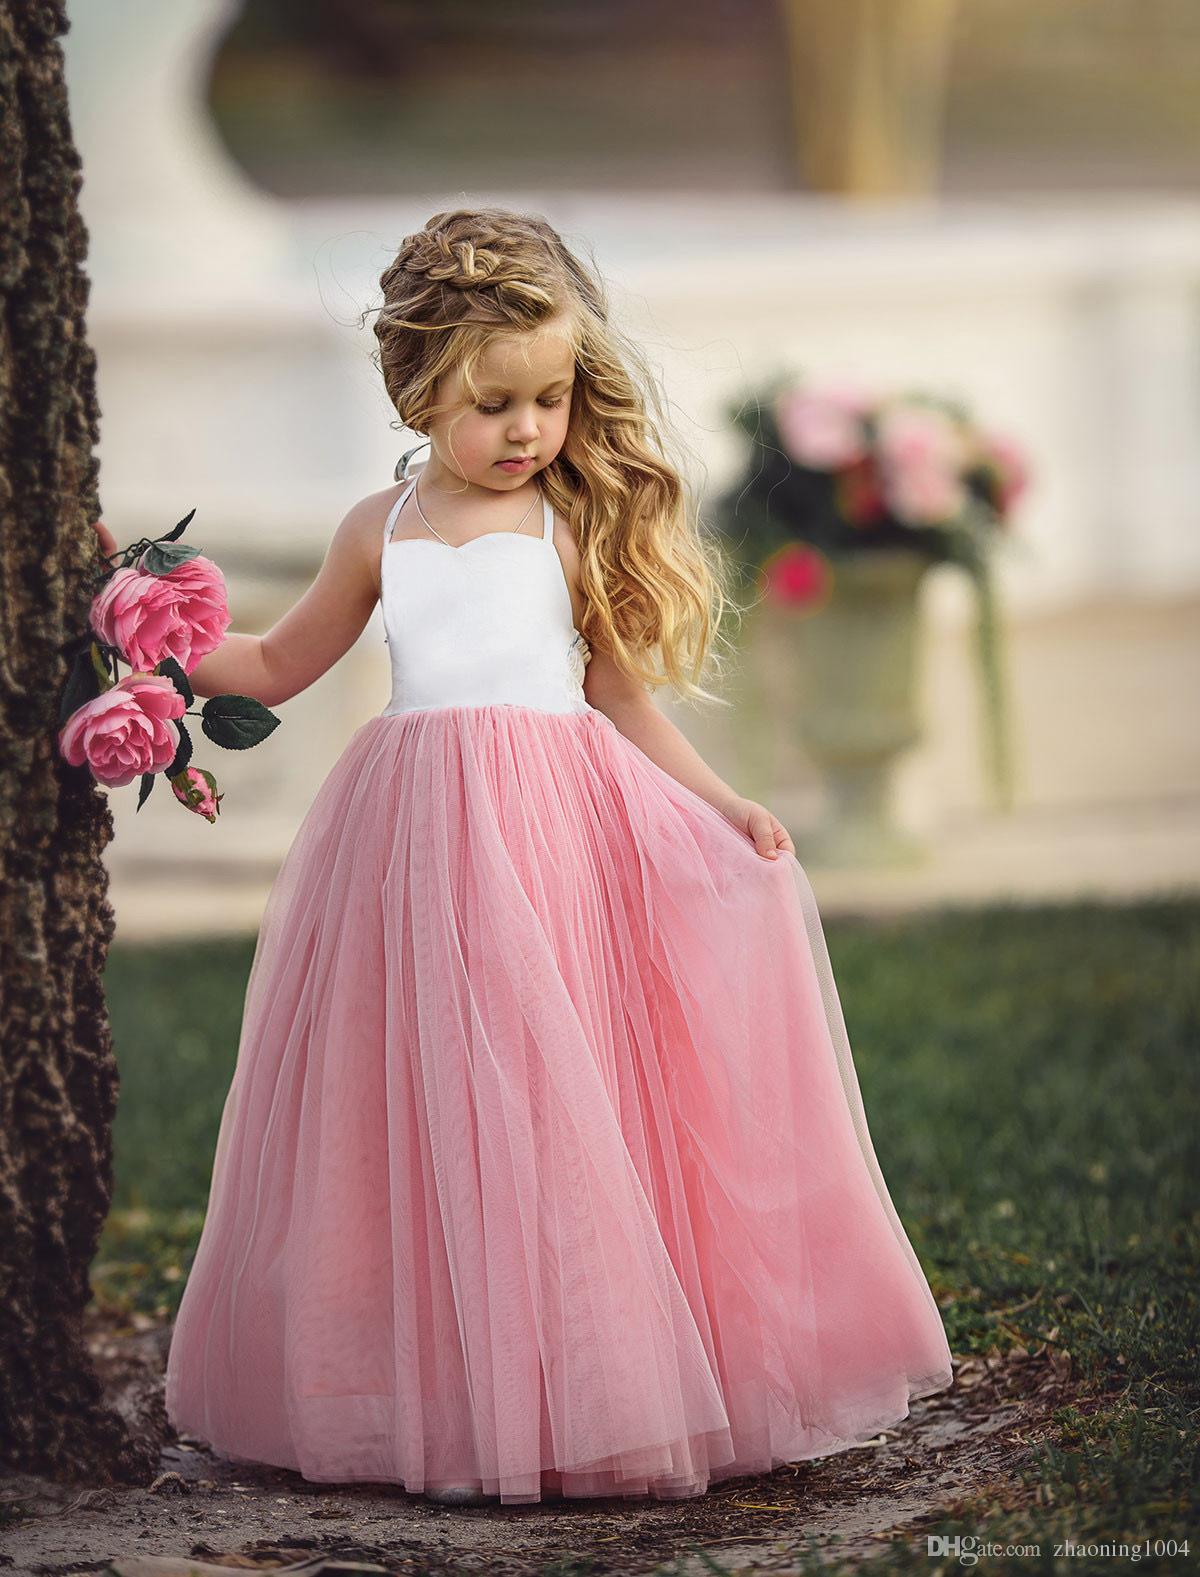 3d6d1a9f0478 2019 Designer Flower Girls Dresses For Weddings Toddler Pageant Dress  Flowergirl Summer Dresses Kid First Communion Clothing Lace Party Clothes  From ...